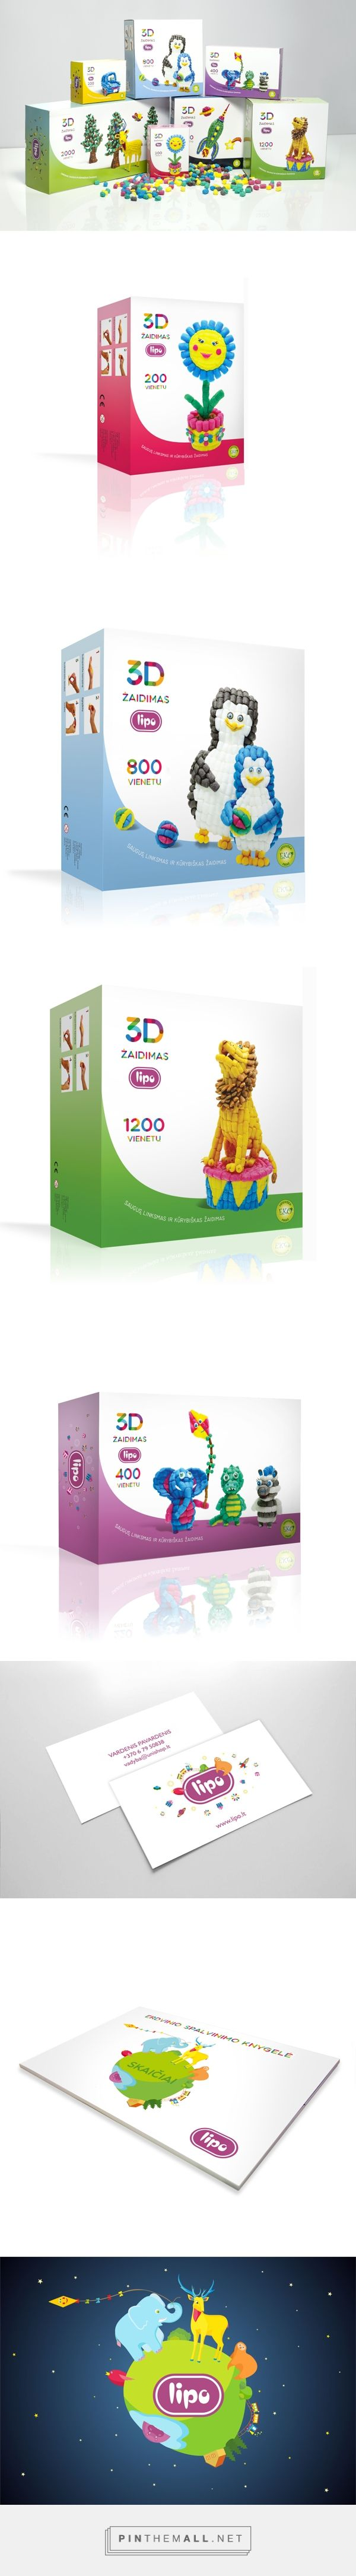 LIpo children's toy packaging design on Behance - created via http://pinthemall.net